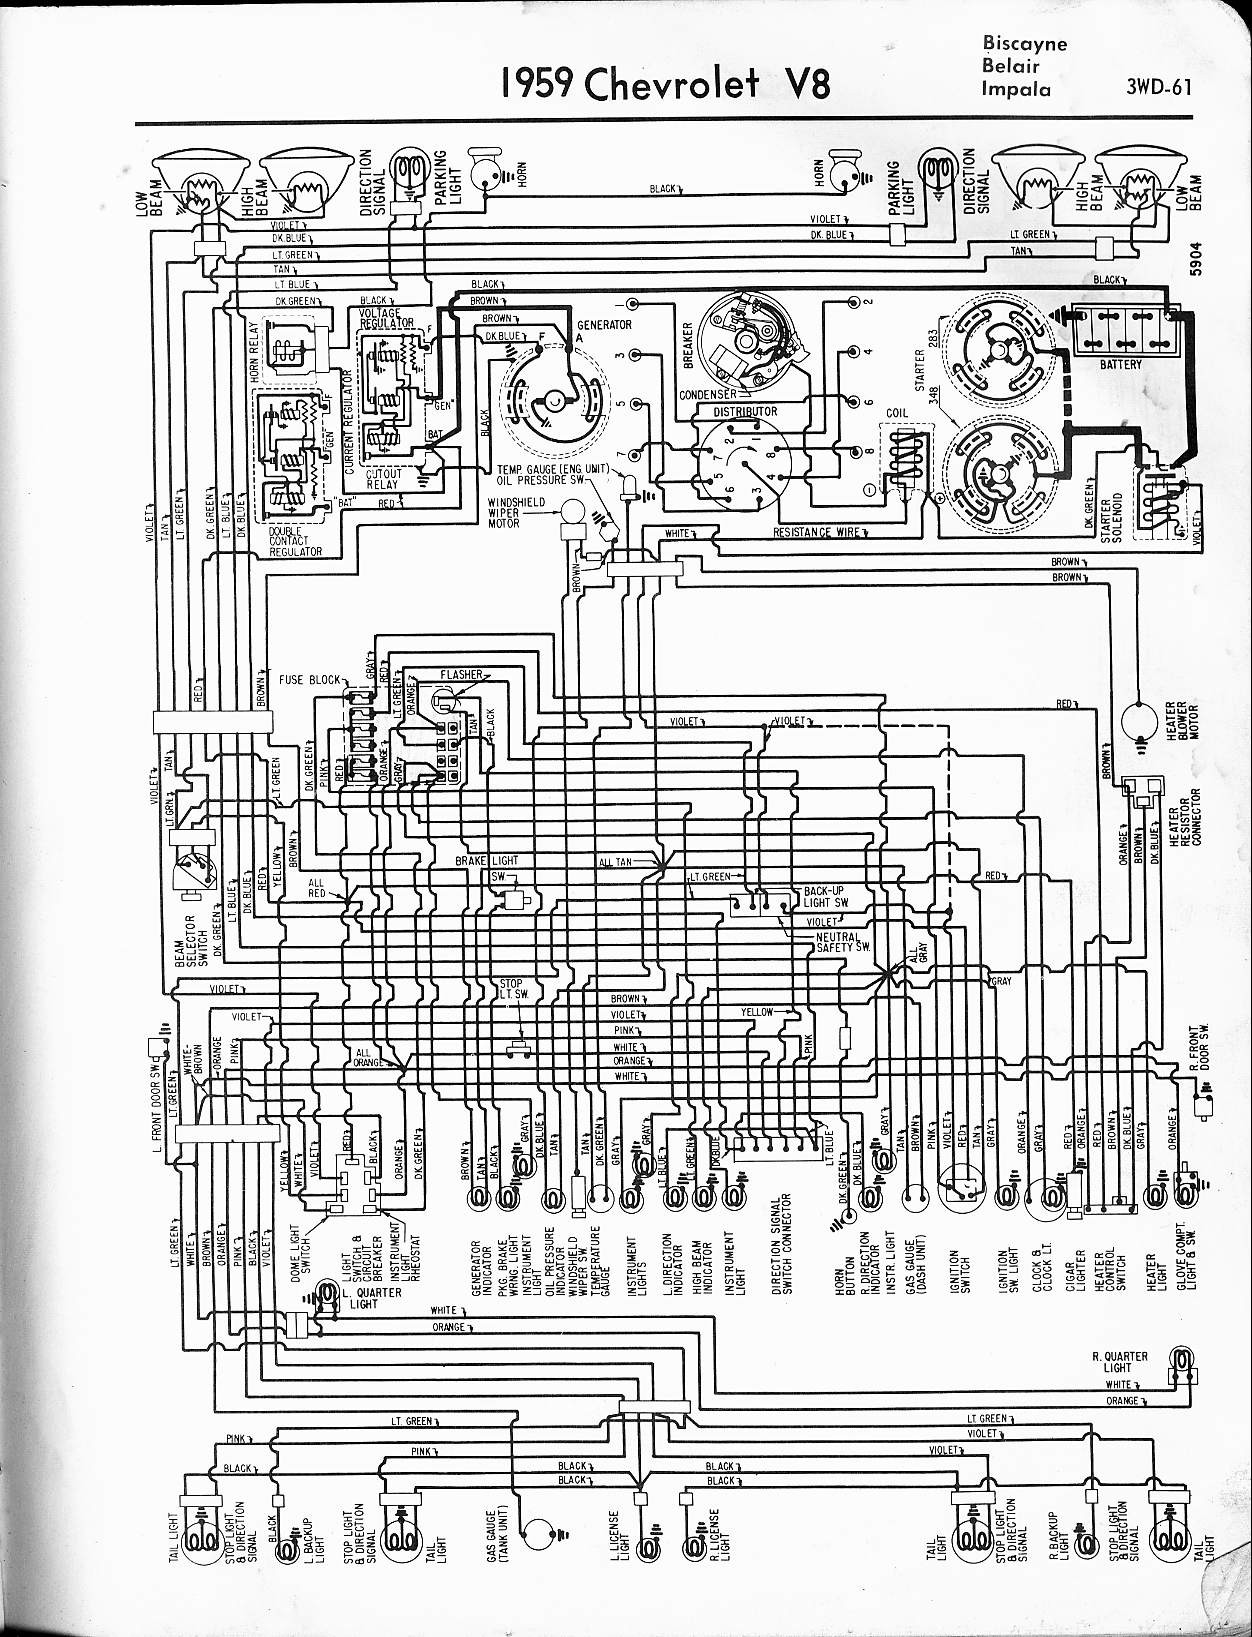 1959 Chevrolet Pickup Wiring Diagram